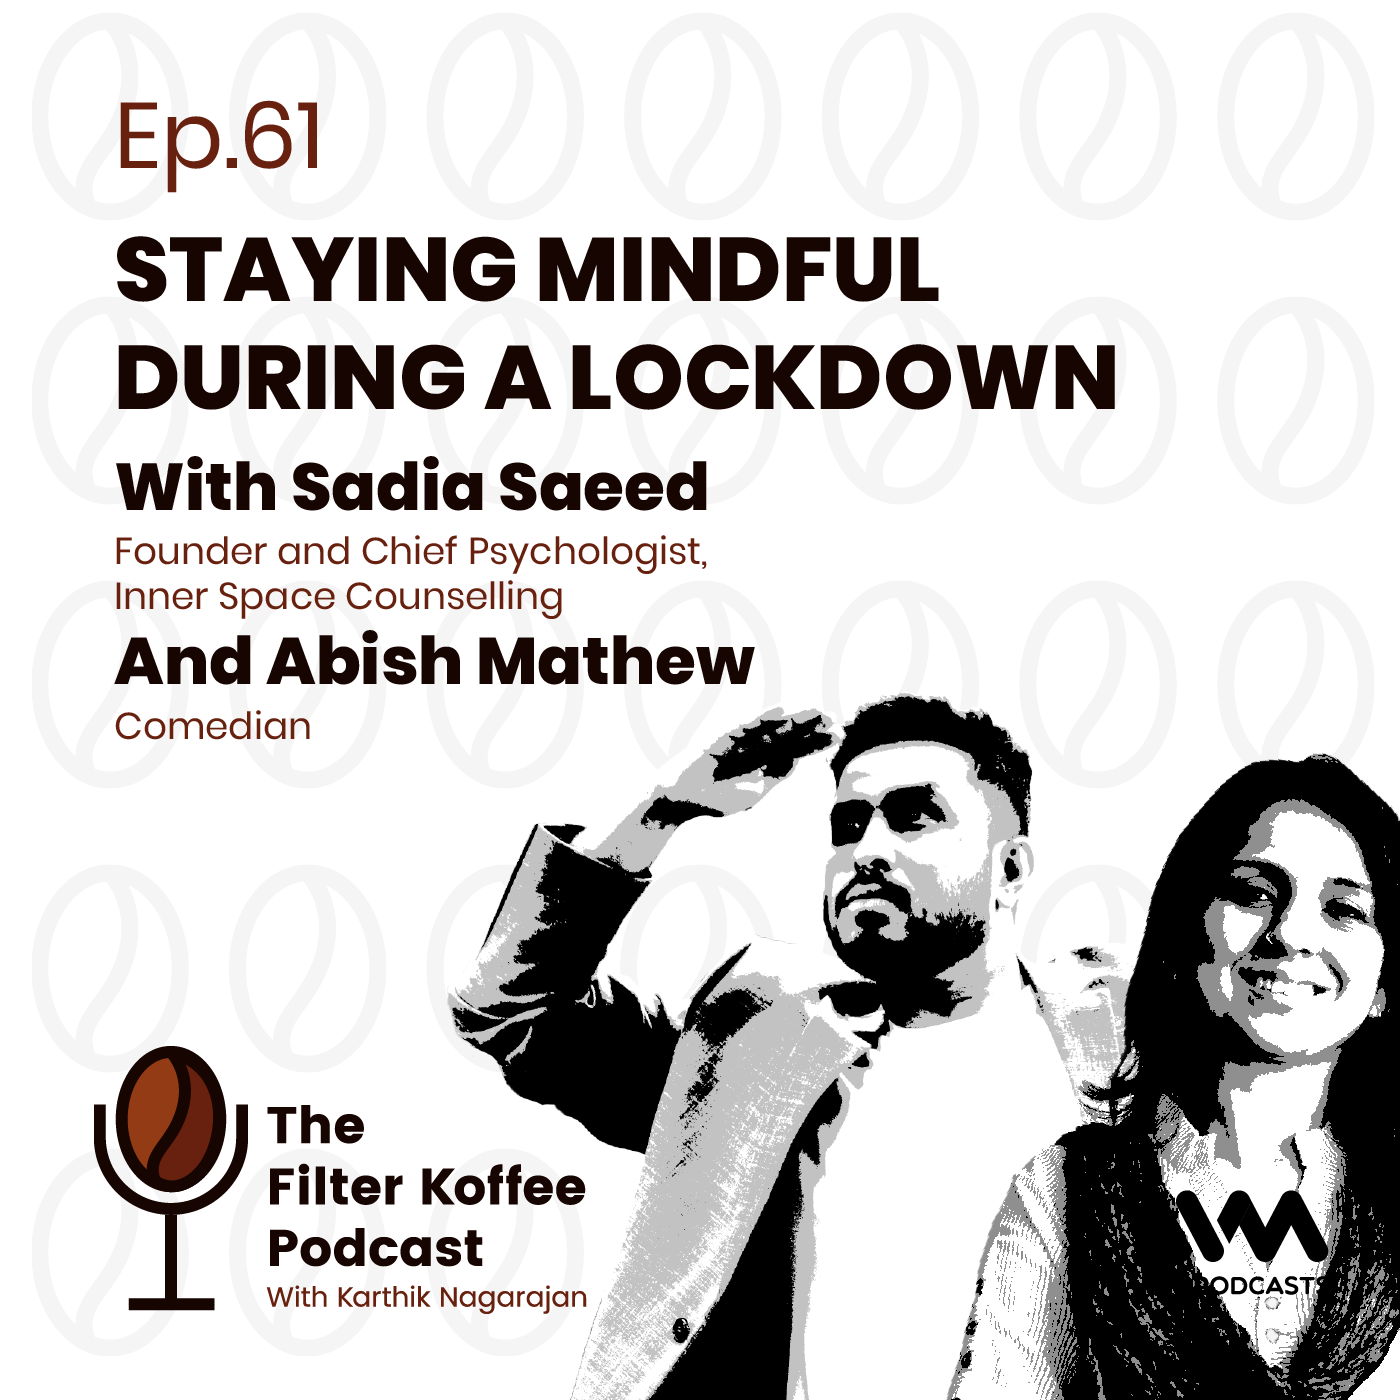 Ep. 61: Staying Mindful during a Lockdown